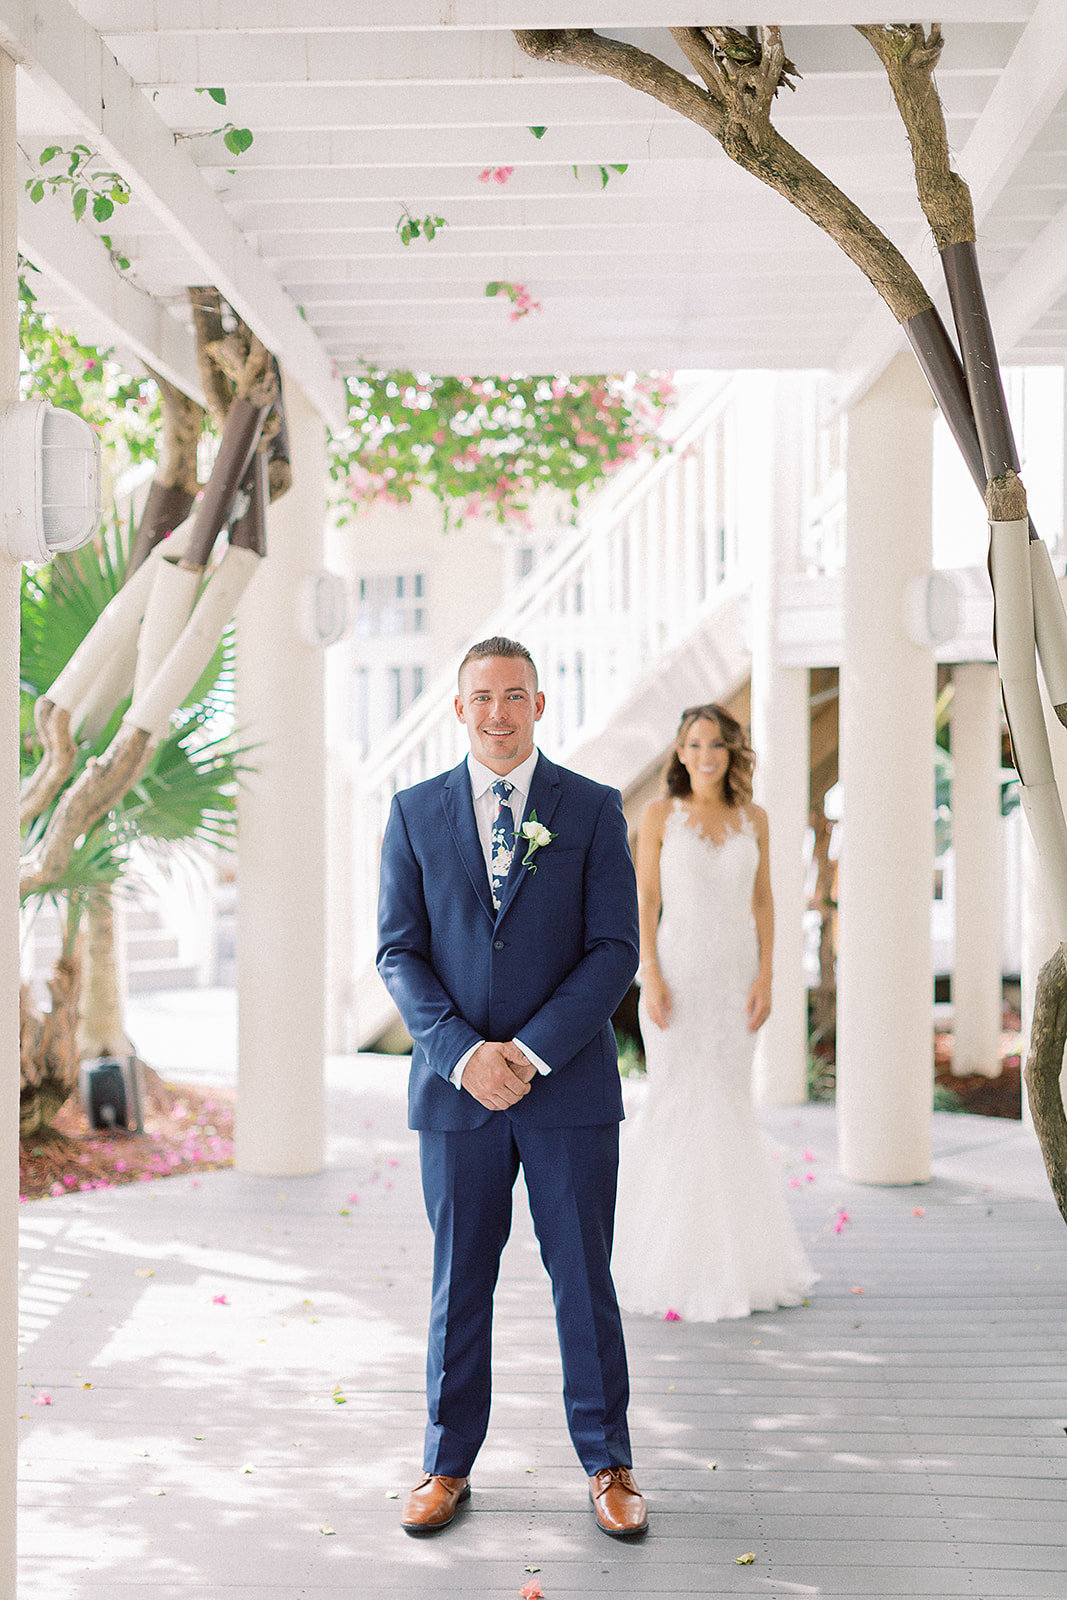 Aubry___Bill_Forsyth_Hyatt_Centric_Key_West_Wedding_Photographer_Casie_Marie_Photography-175